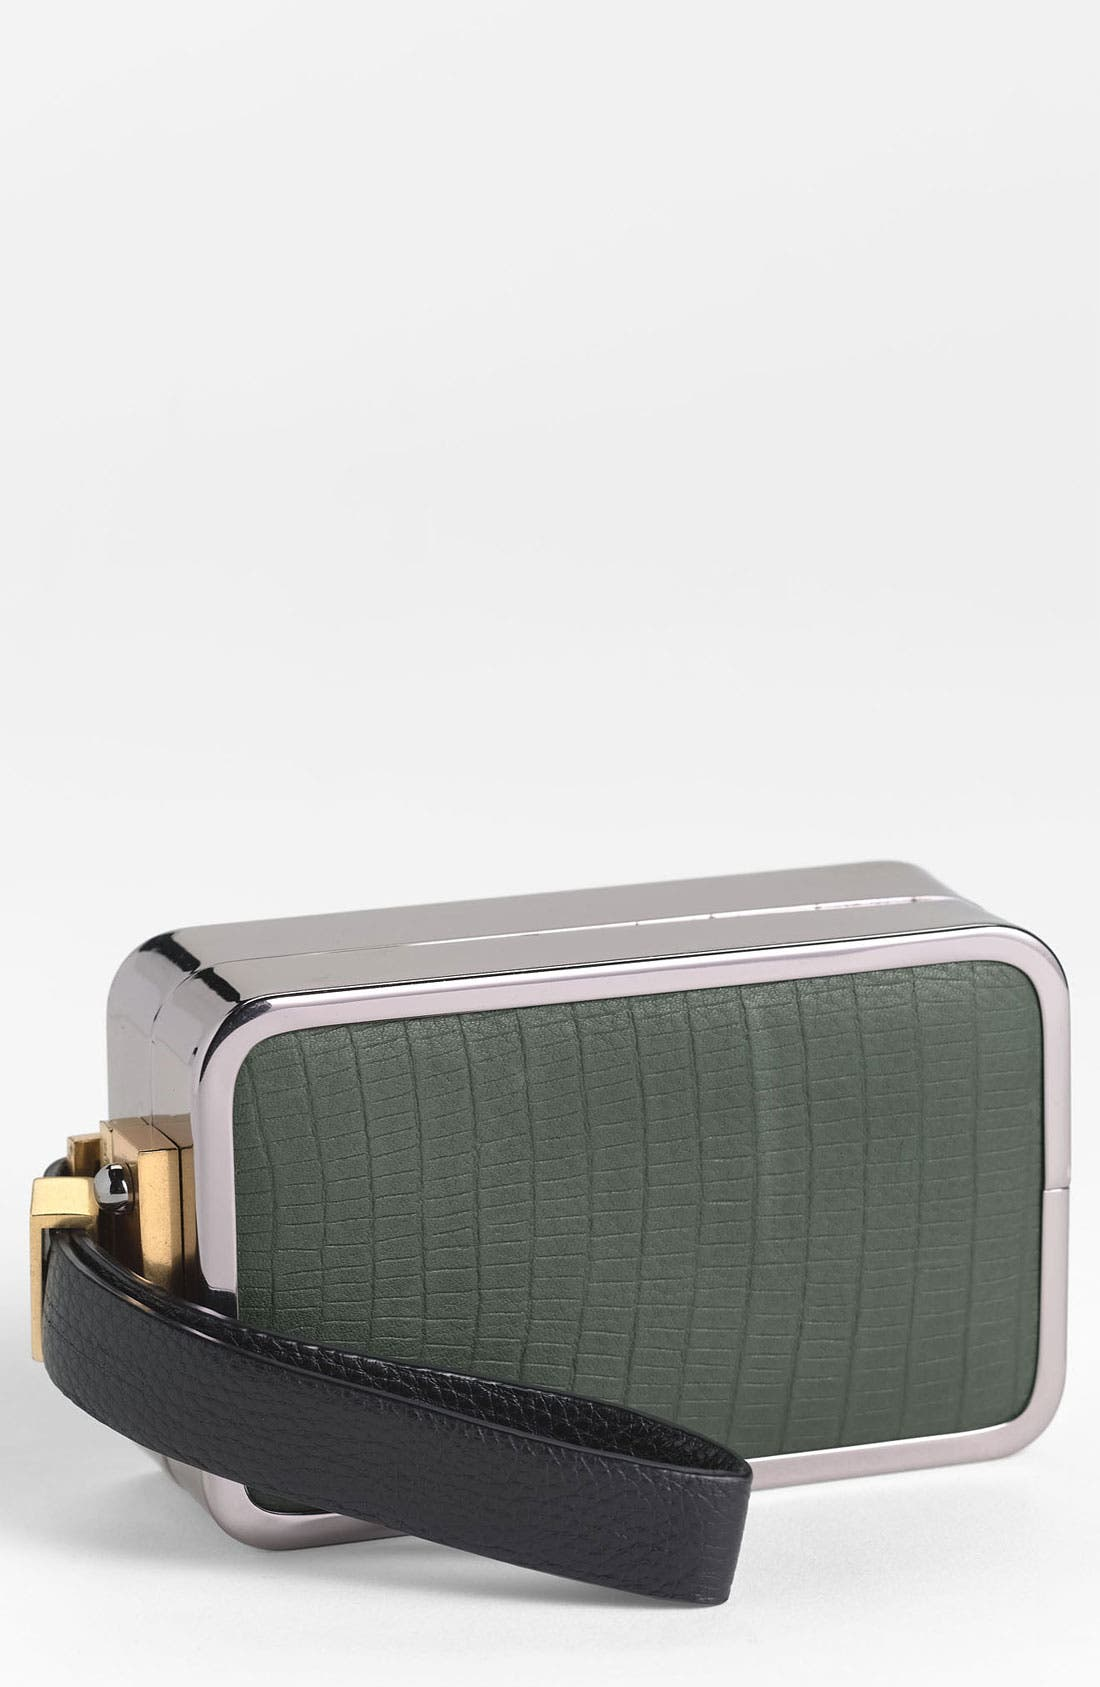 Alternate Image 1 Selected - MARC BY MARC JACOBS 'Phone in a Box - Chalky Liz' Phone Clutch